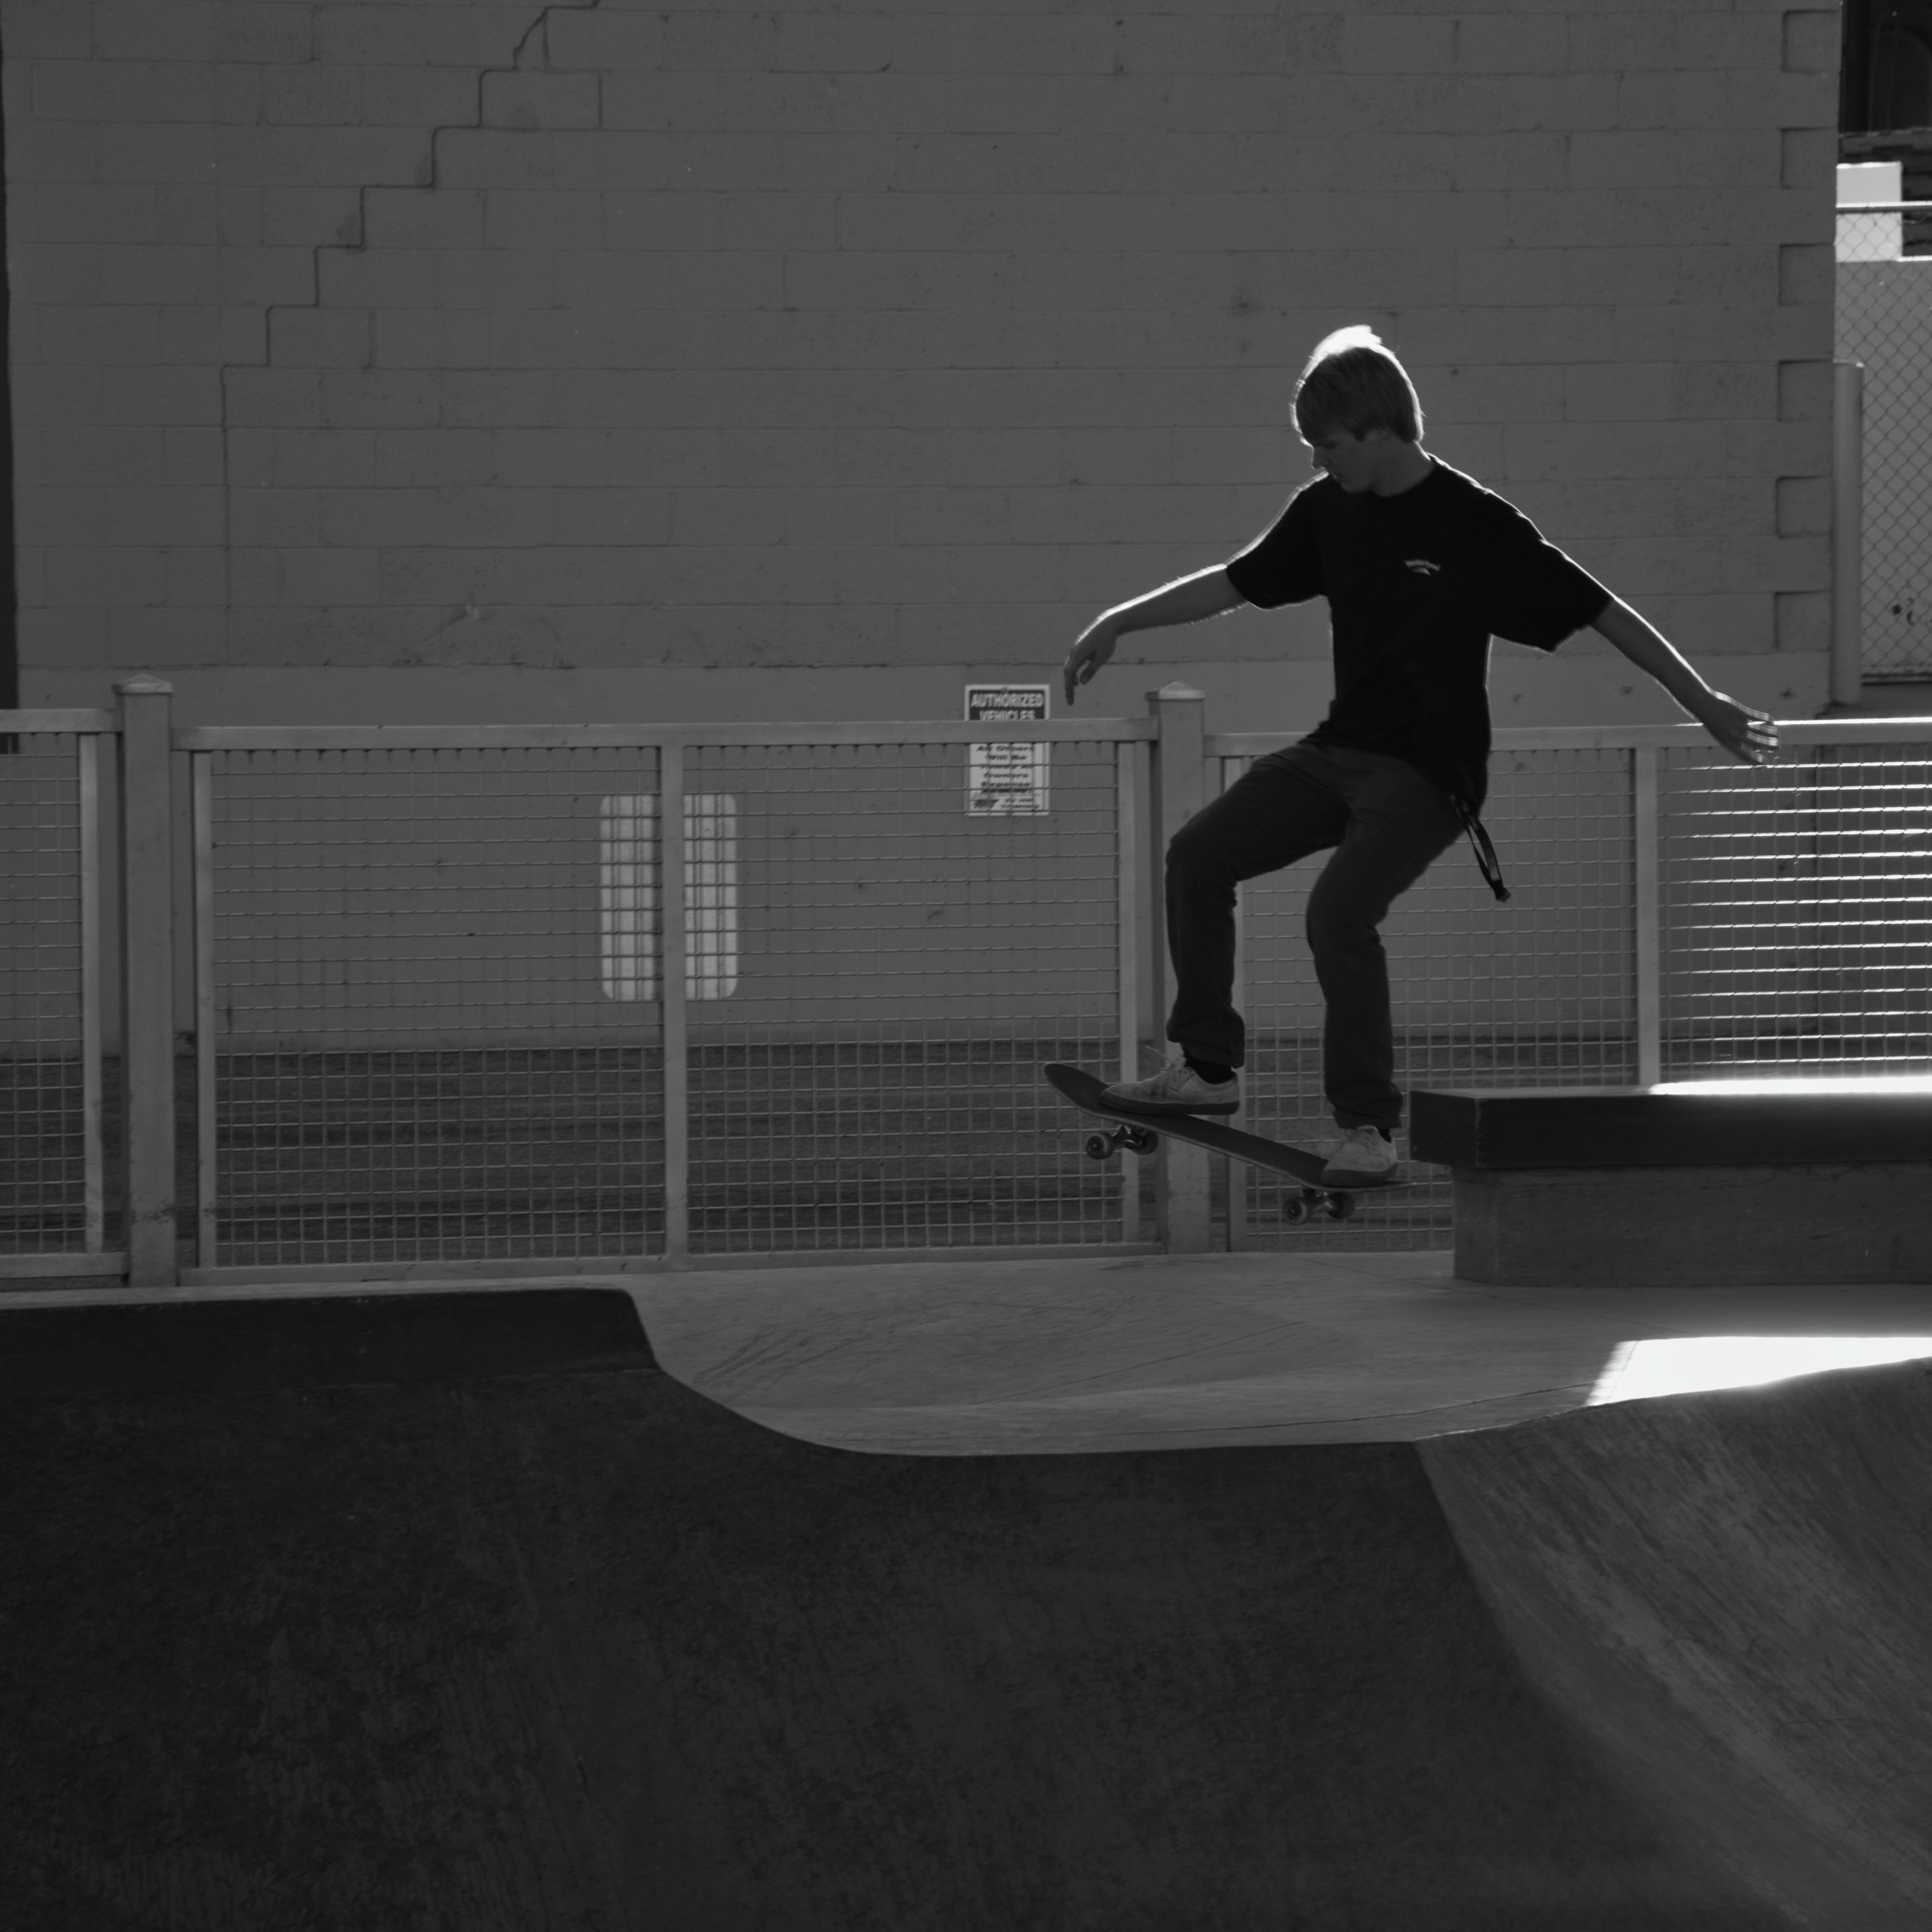 Person Skateboarding in Grayscale Photography